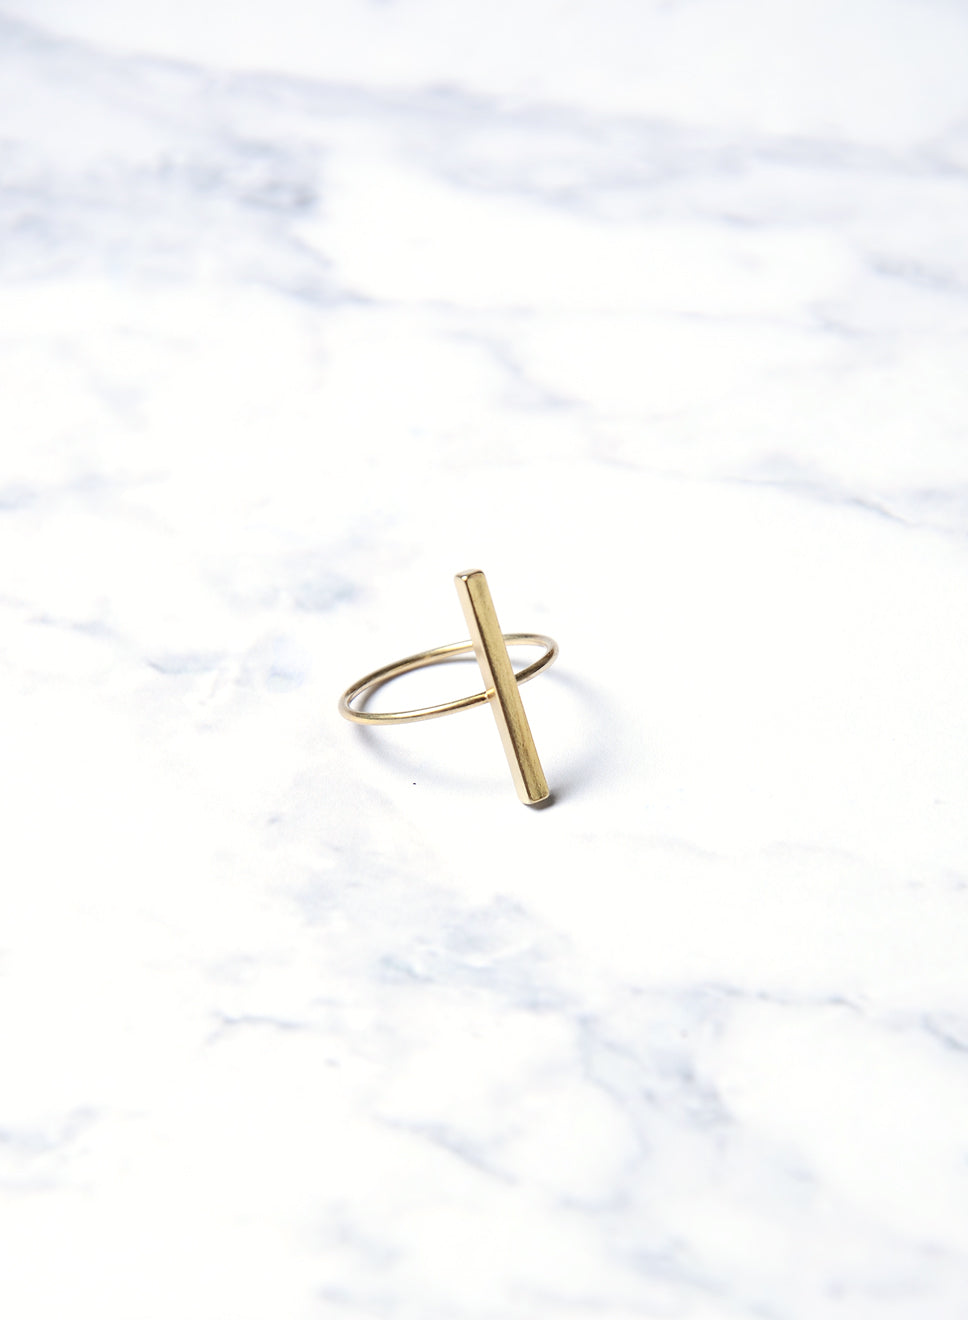 LAE SINGLE BAR RING GOLD at $ 5.00 only sold at And Well Dressed Online Fashion Store Singapore